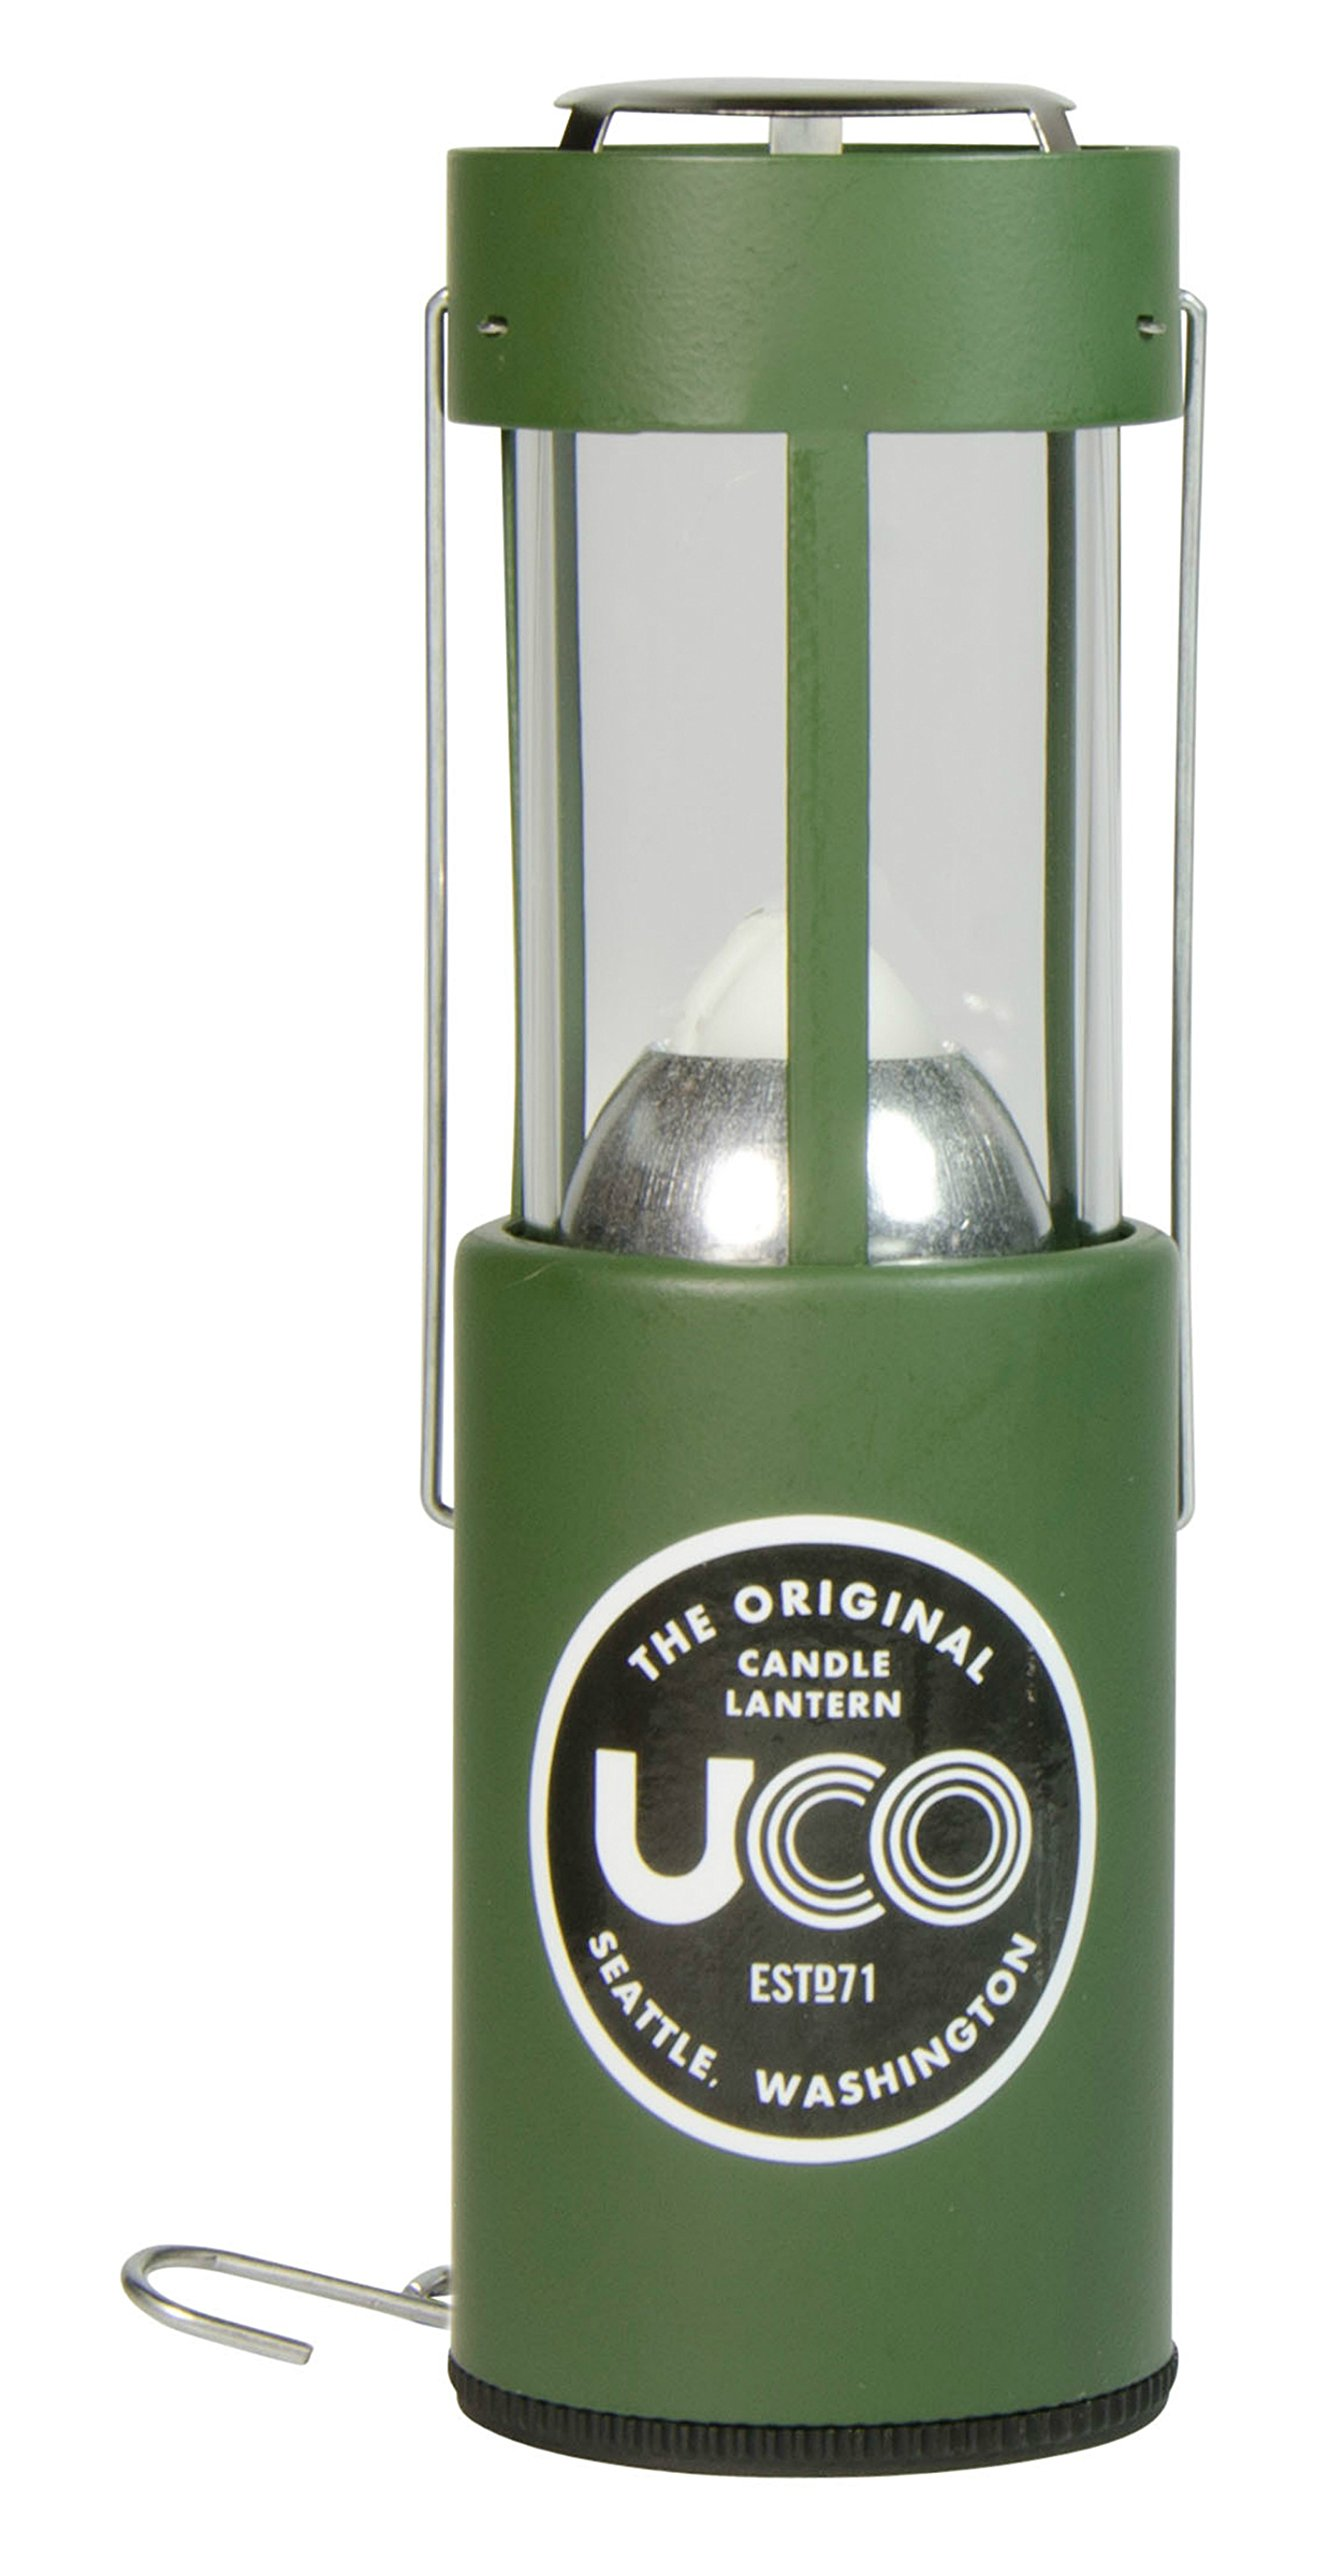 UCO Original Collapsible Candle Lantern, Green